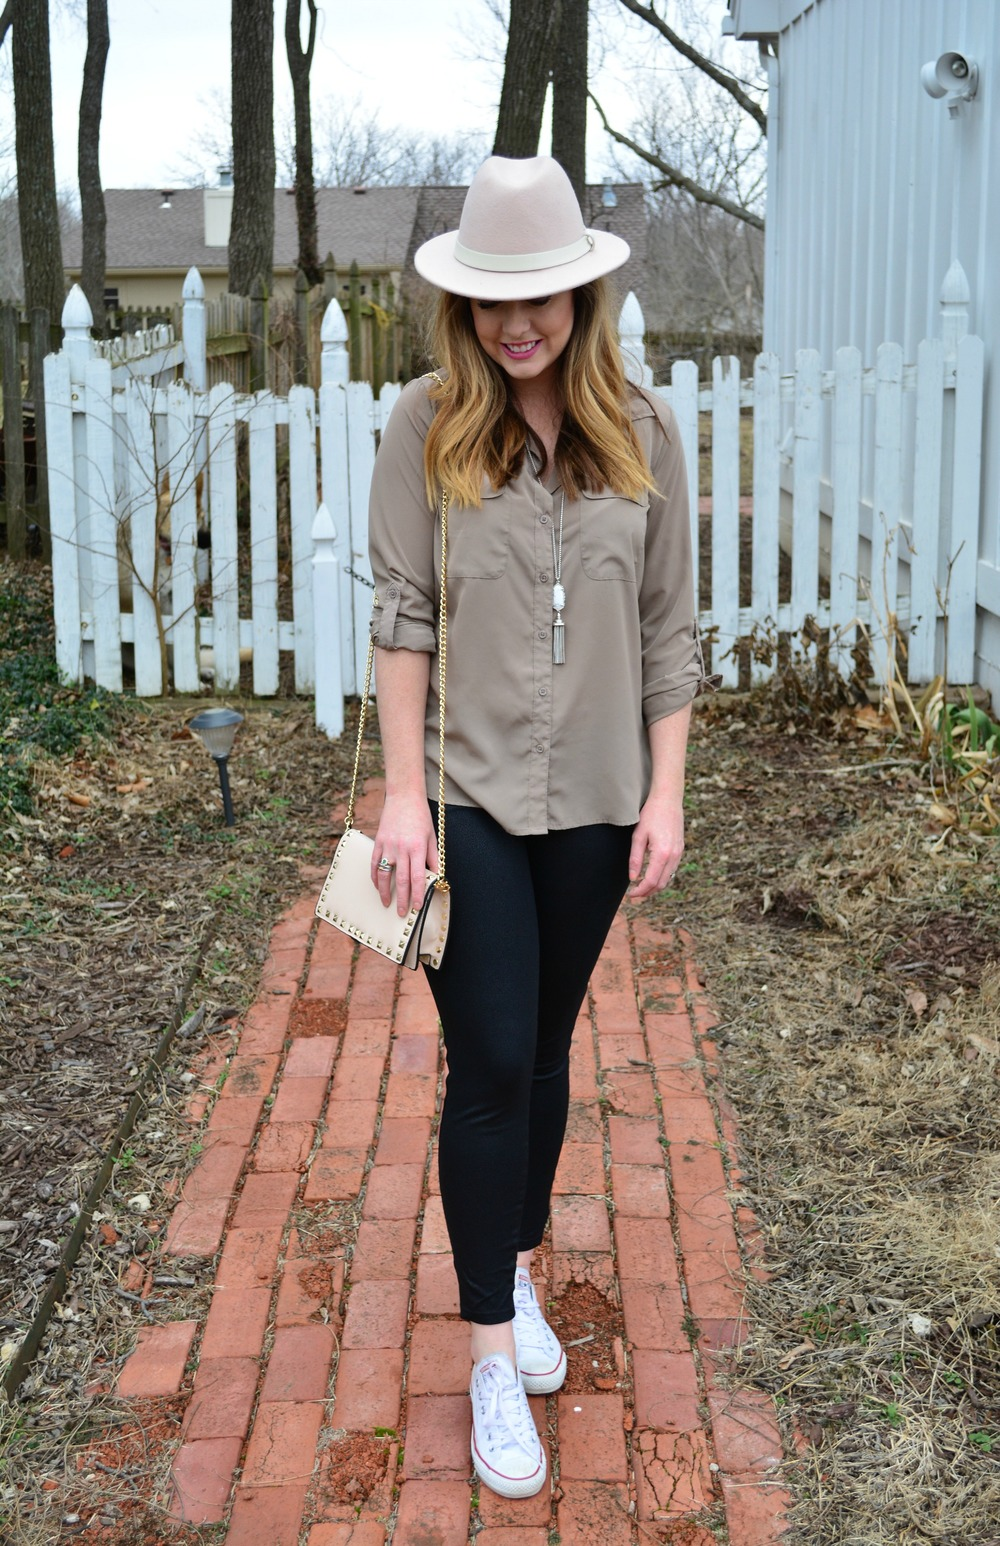 Neutral outfit with blush accessories for spring